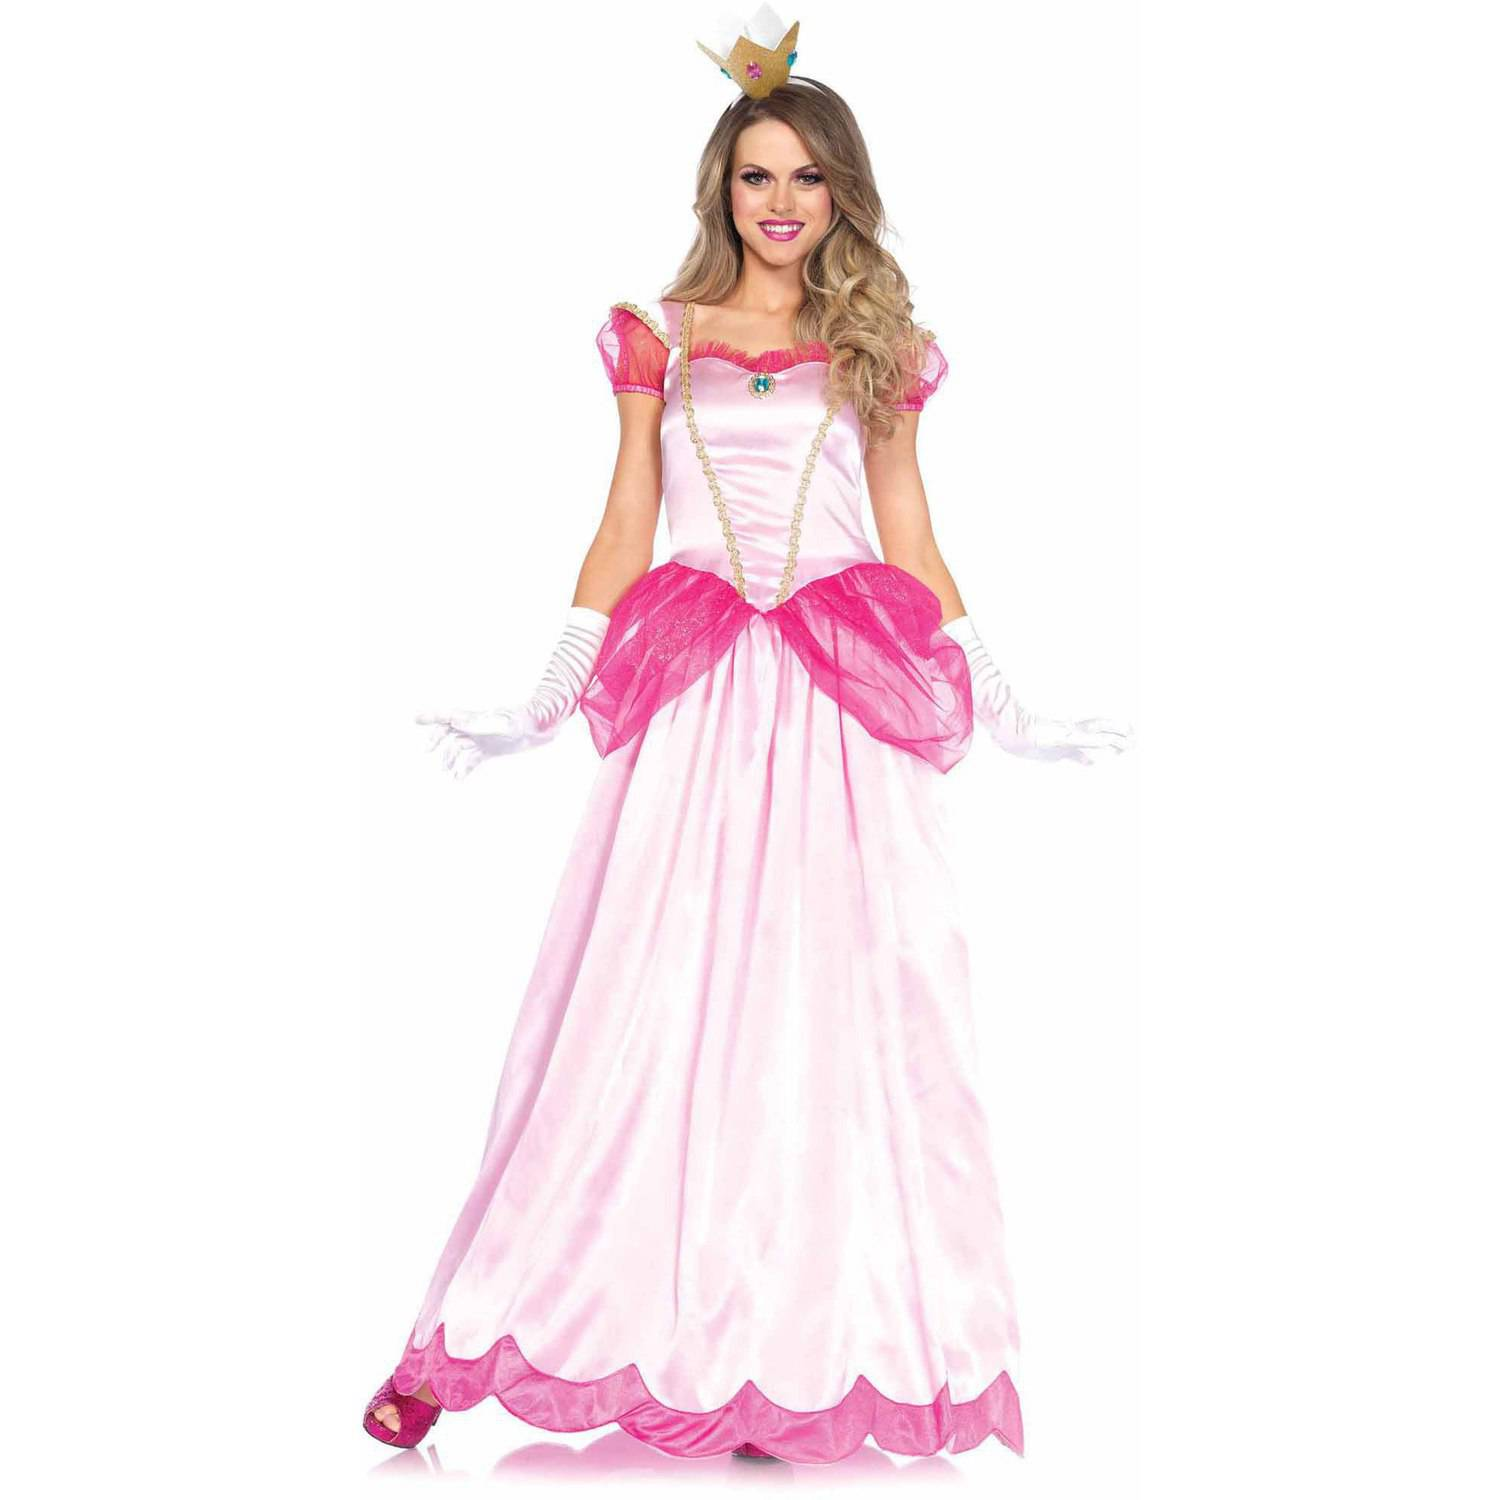 Leg Avenue 2-Piece Classic Pink Princess Adult Halloween Costume - Walmart.com  sc 1 st  Walmart : adult cartoon character costumes  - Germanpascual.Com